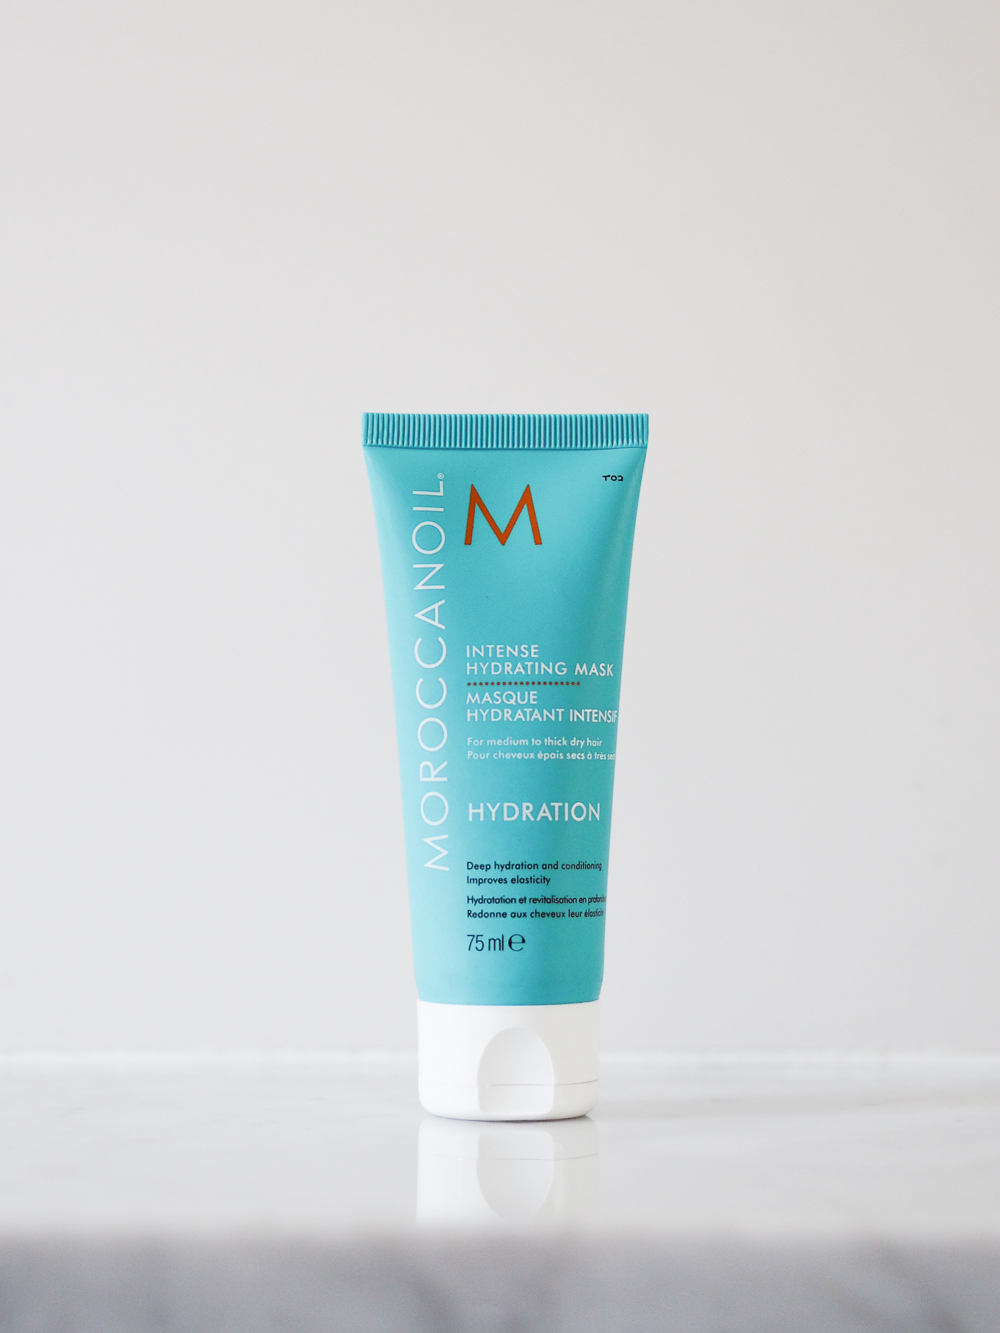 Moroccan Oil Intense Hydrating Mask review | Design Hunter